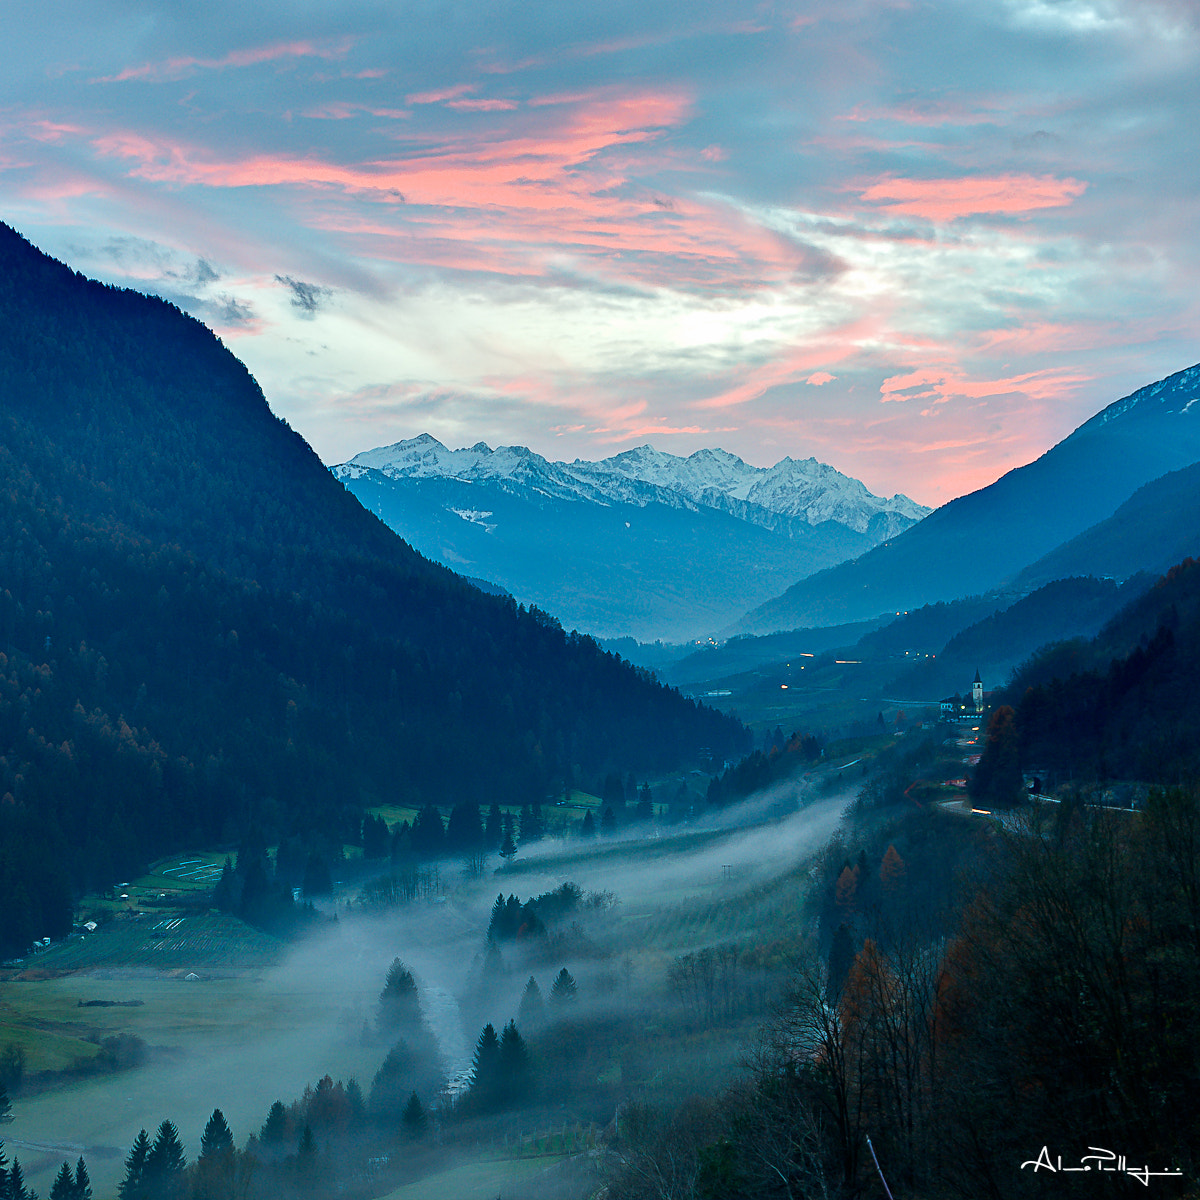 Photograph (3 Dislike in 1 hour.. very good!!!) The cold fog at the sunset by Alessio Pellegrini on 500px